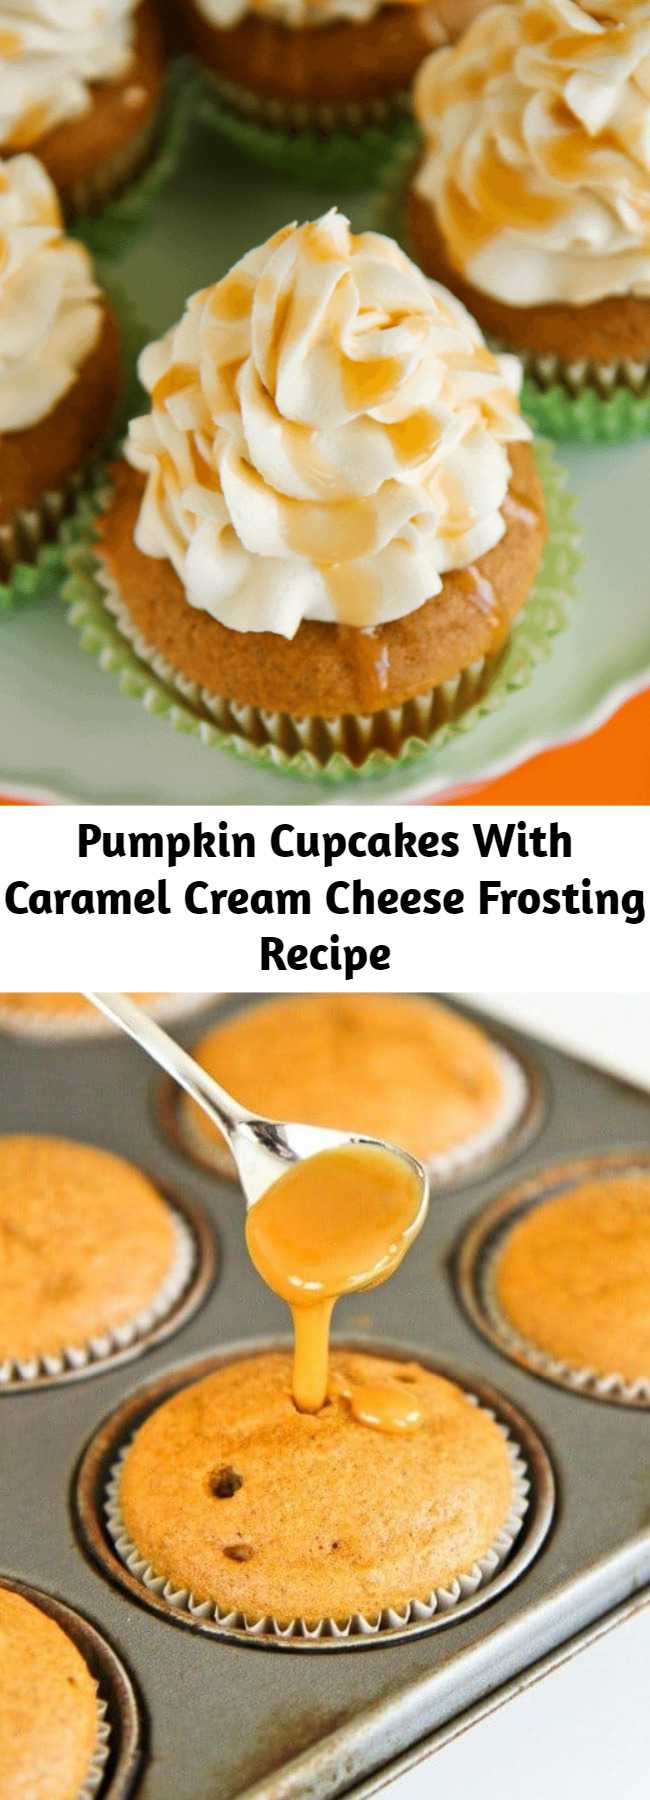 Pumpkin Cupcakes With Caramel Cream Cheese Frosting Recipe - A delicious blend of pumpkin, caramel and cream cheese, these pumpkin cupcakes are a perfect fall dessert. If you love pumpkin, put these on your baking list. They are DELISH!